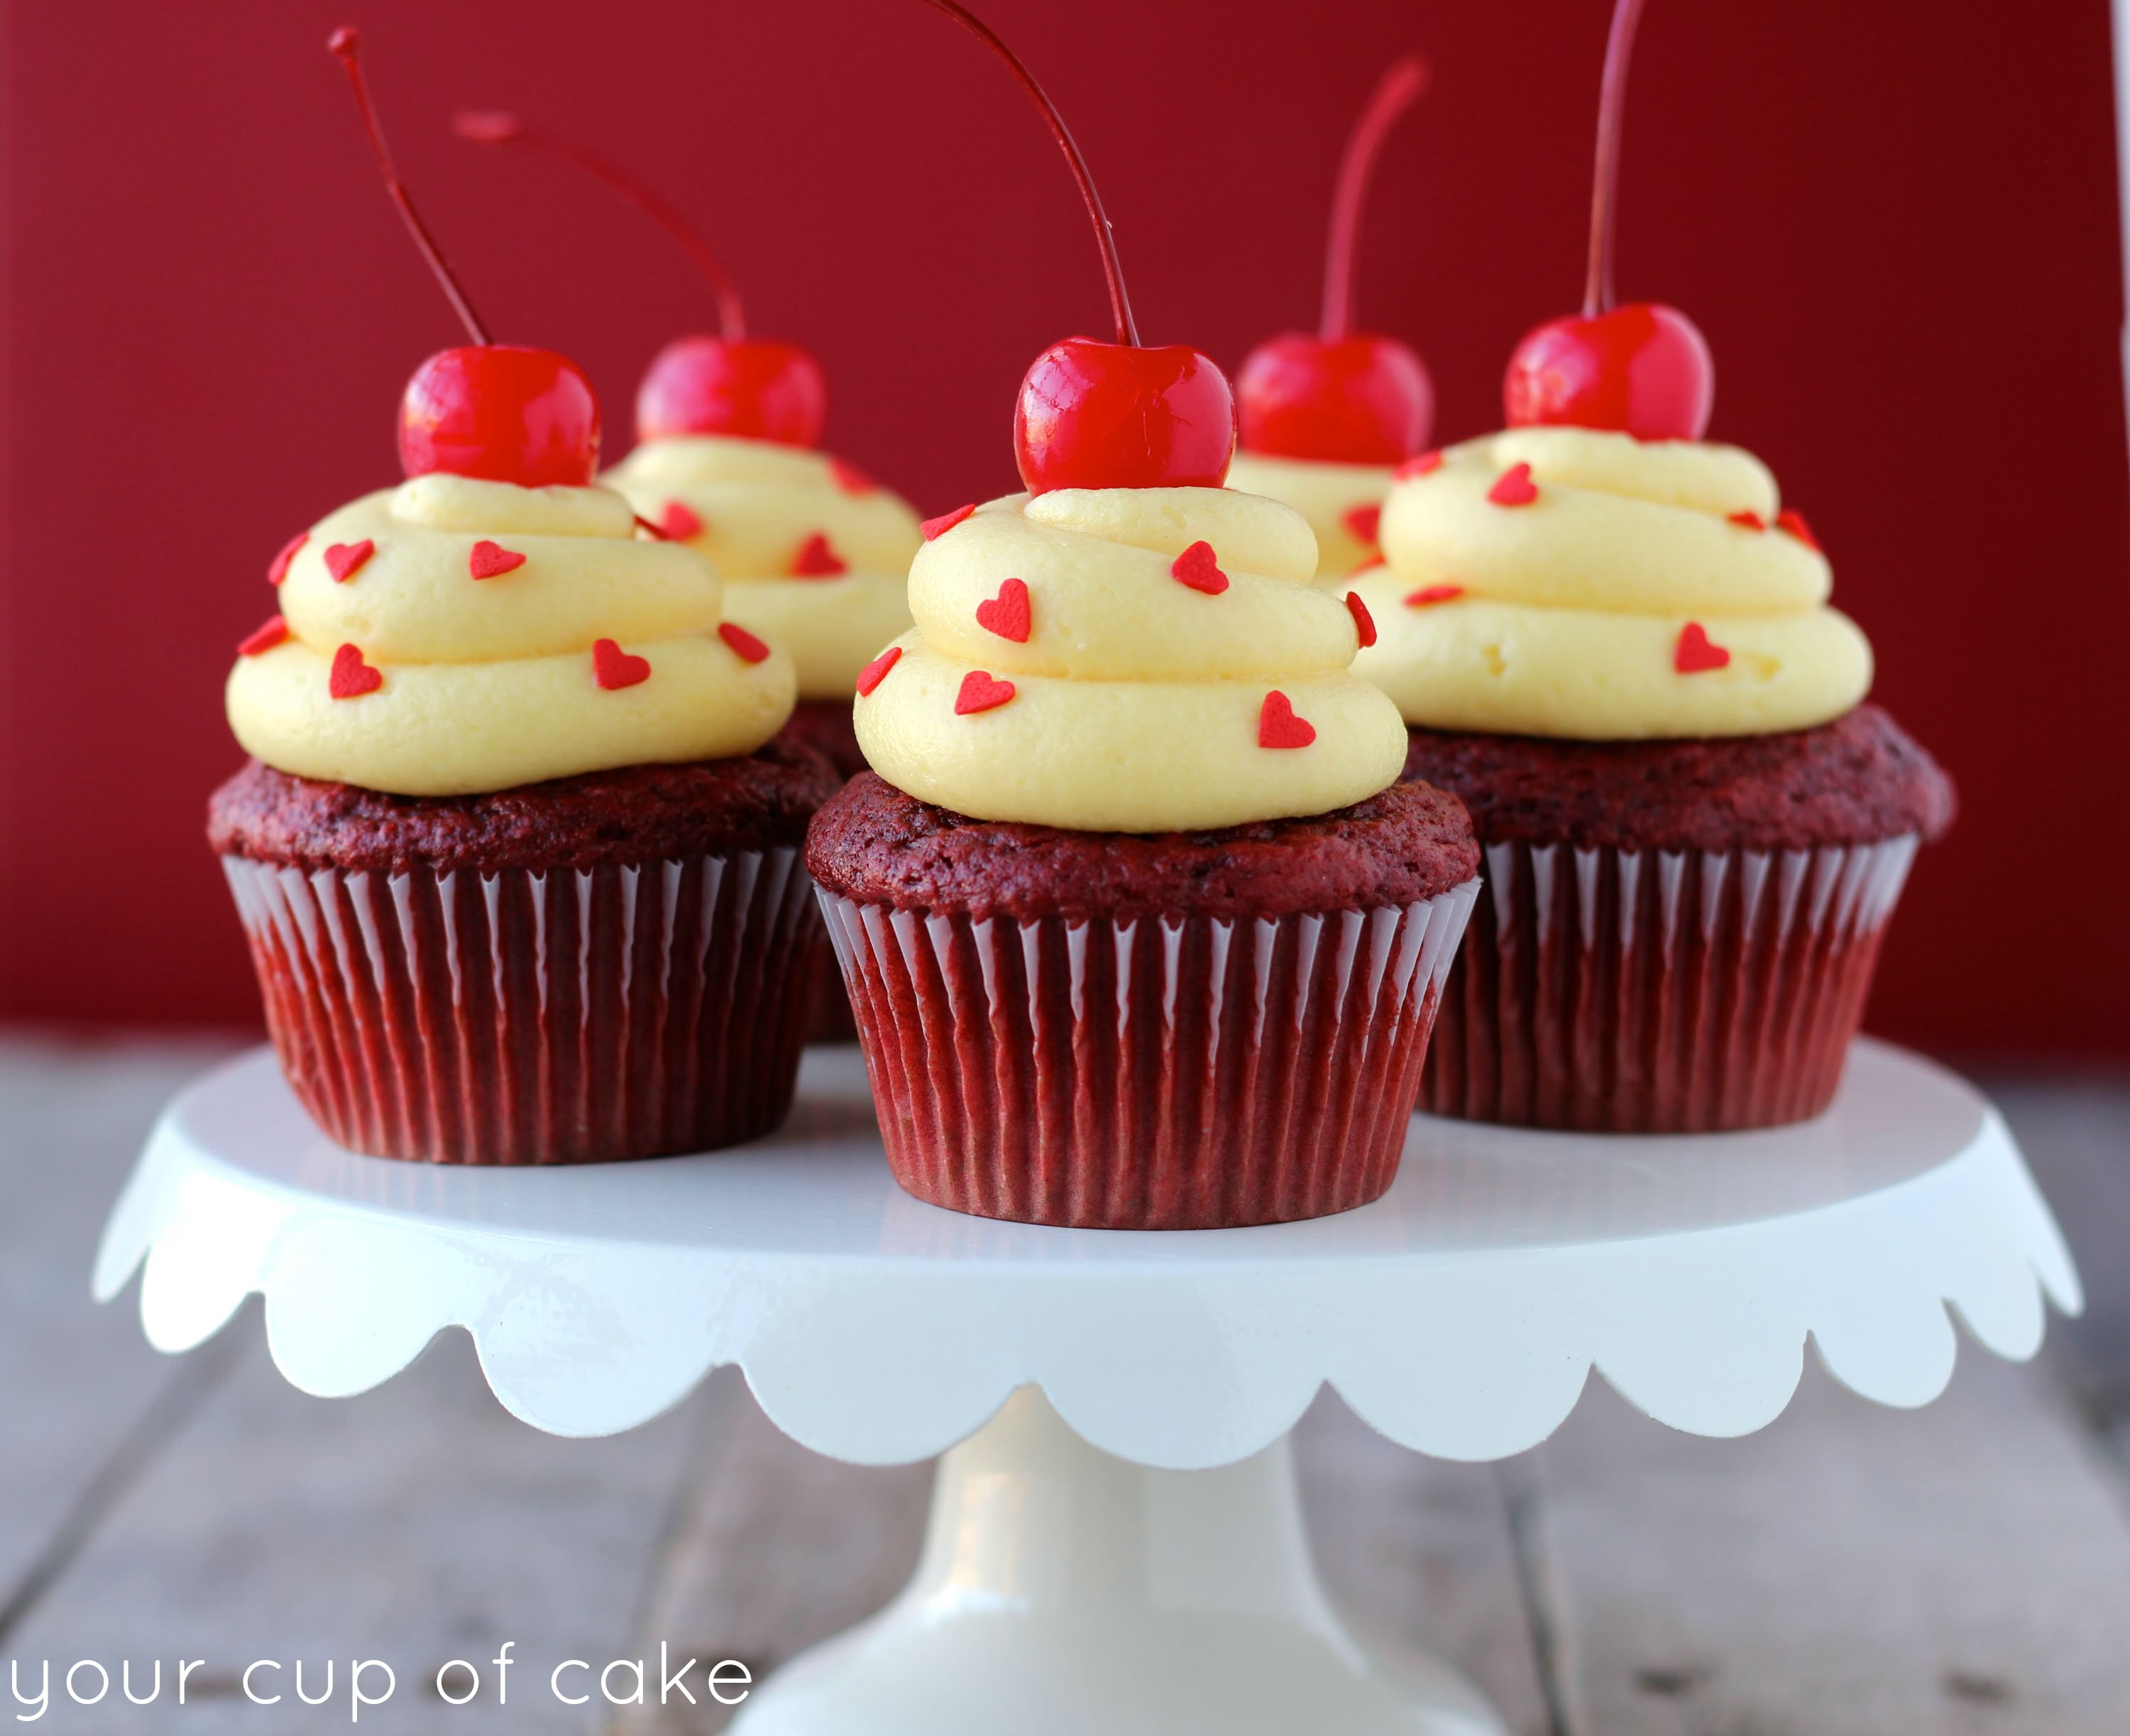 16 Sweet And Tasty Dessert Ideas For Valentine S Day